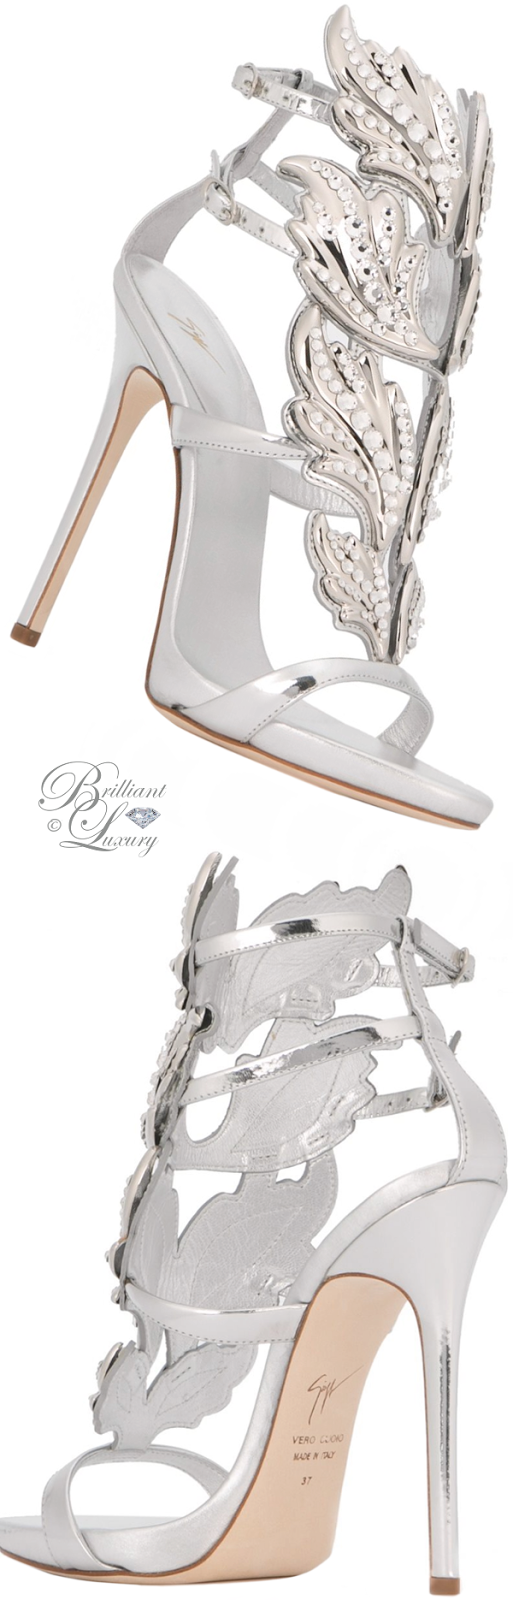 Brilliant Luxury ♦ Giuseppe Zanotti Embellished Cruel Sandals